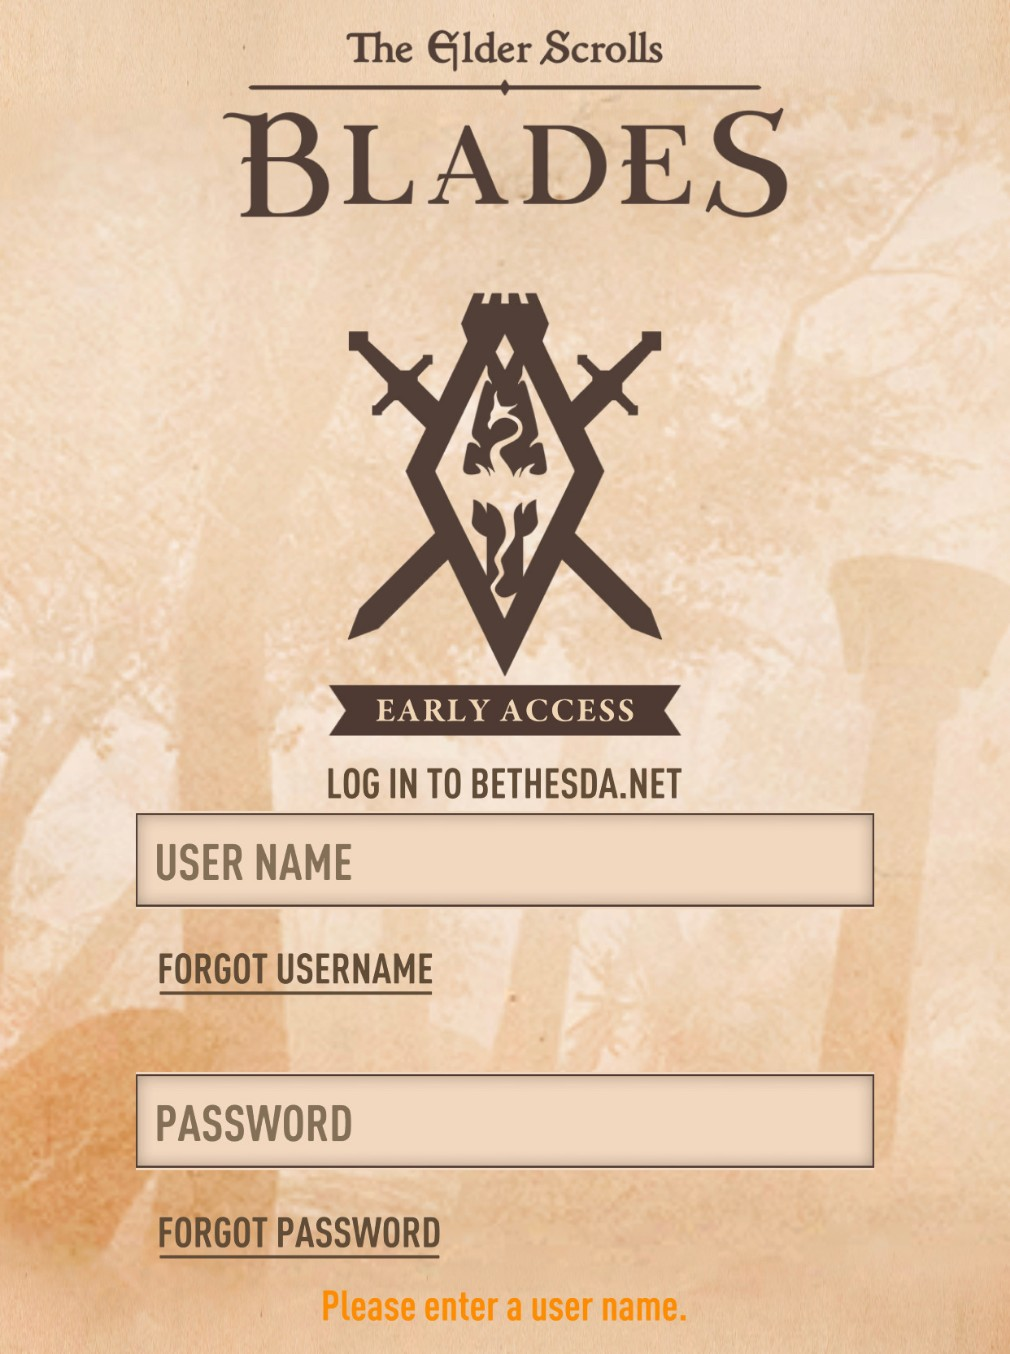 The Elder Scrolls: Blades iOS screenshot - The log-in screen